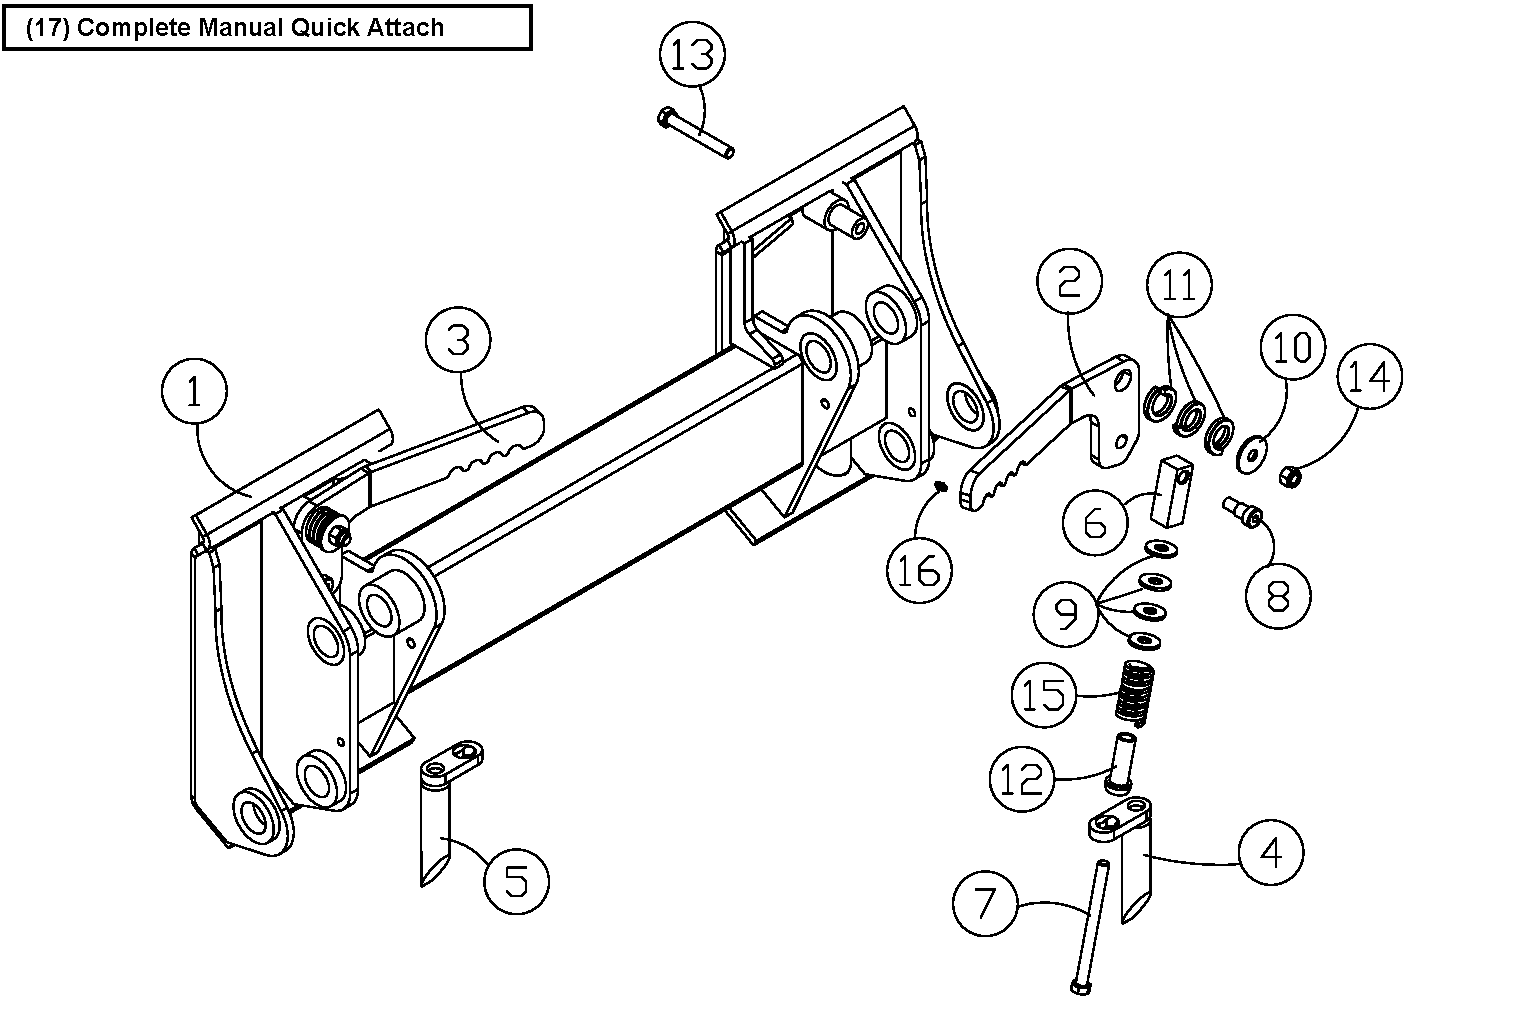 Diagram 17-A Quick Attach Assembly